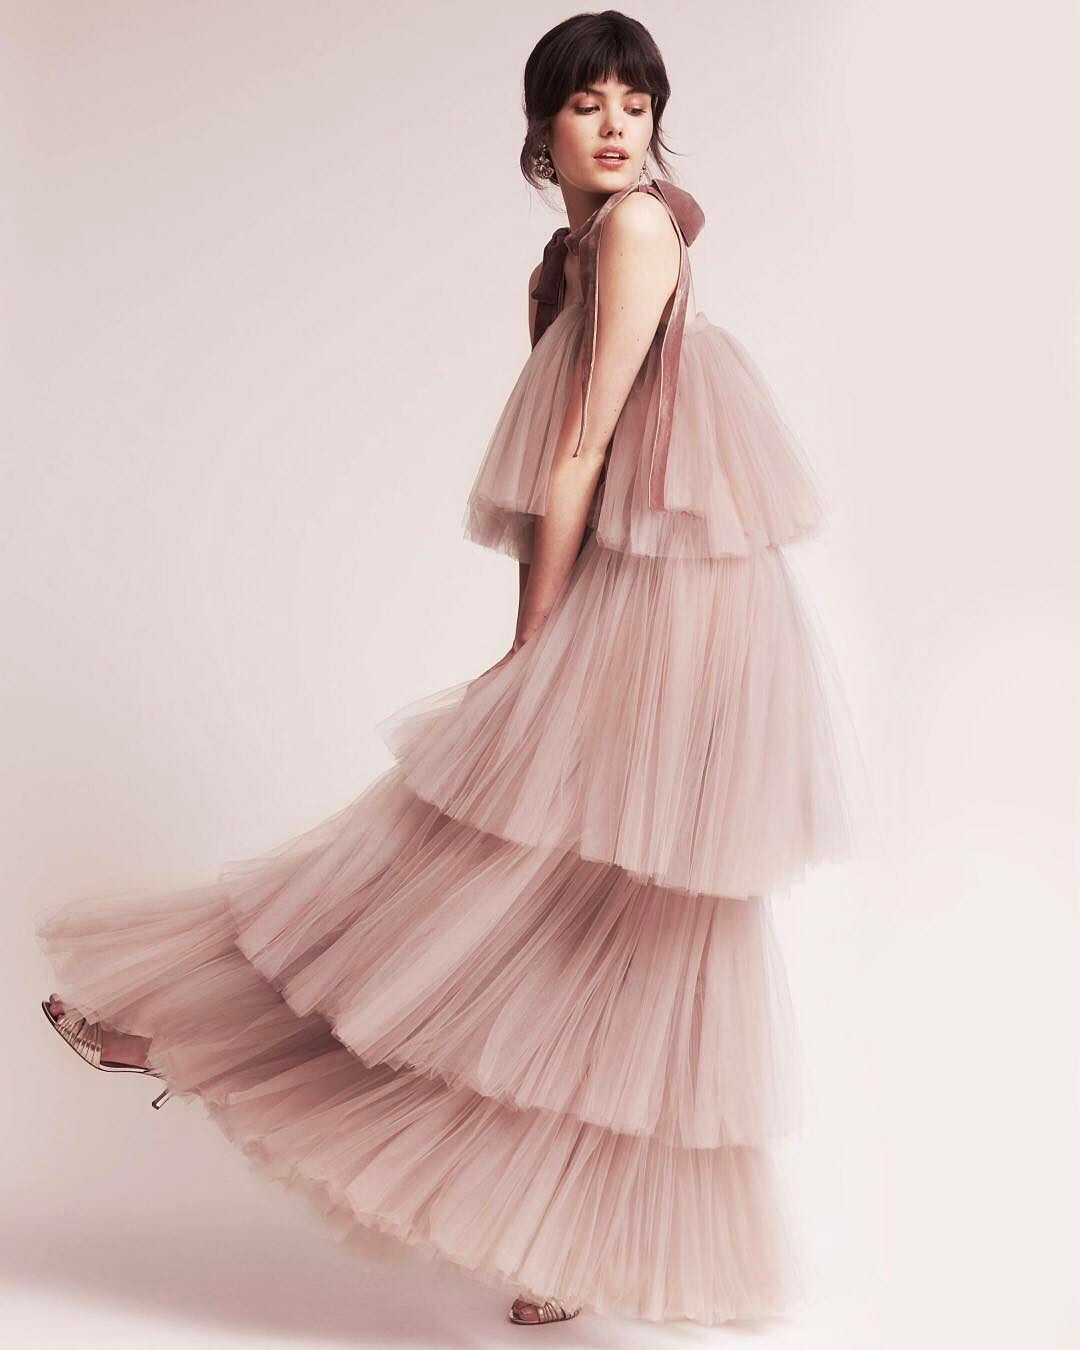 High-fashion meets ready-to-wear. Pre-shop the Astral Gown via the ...